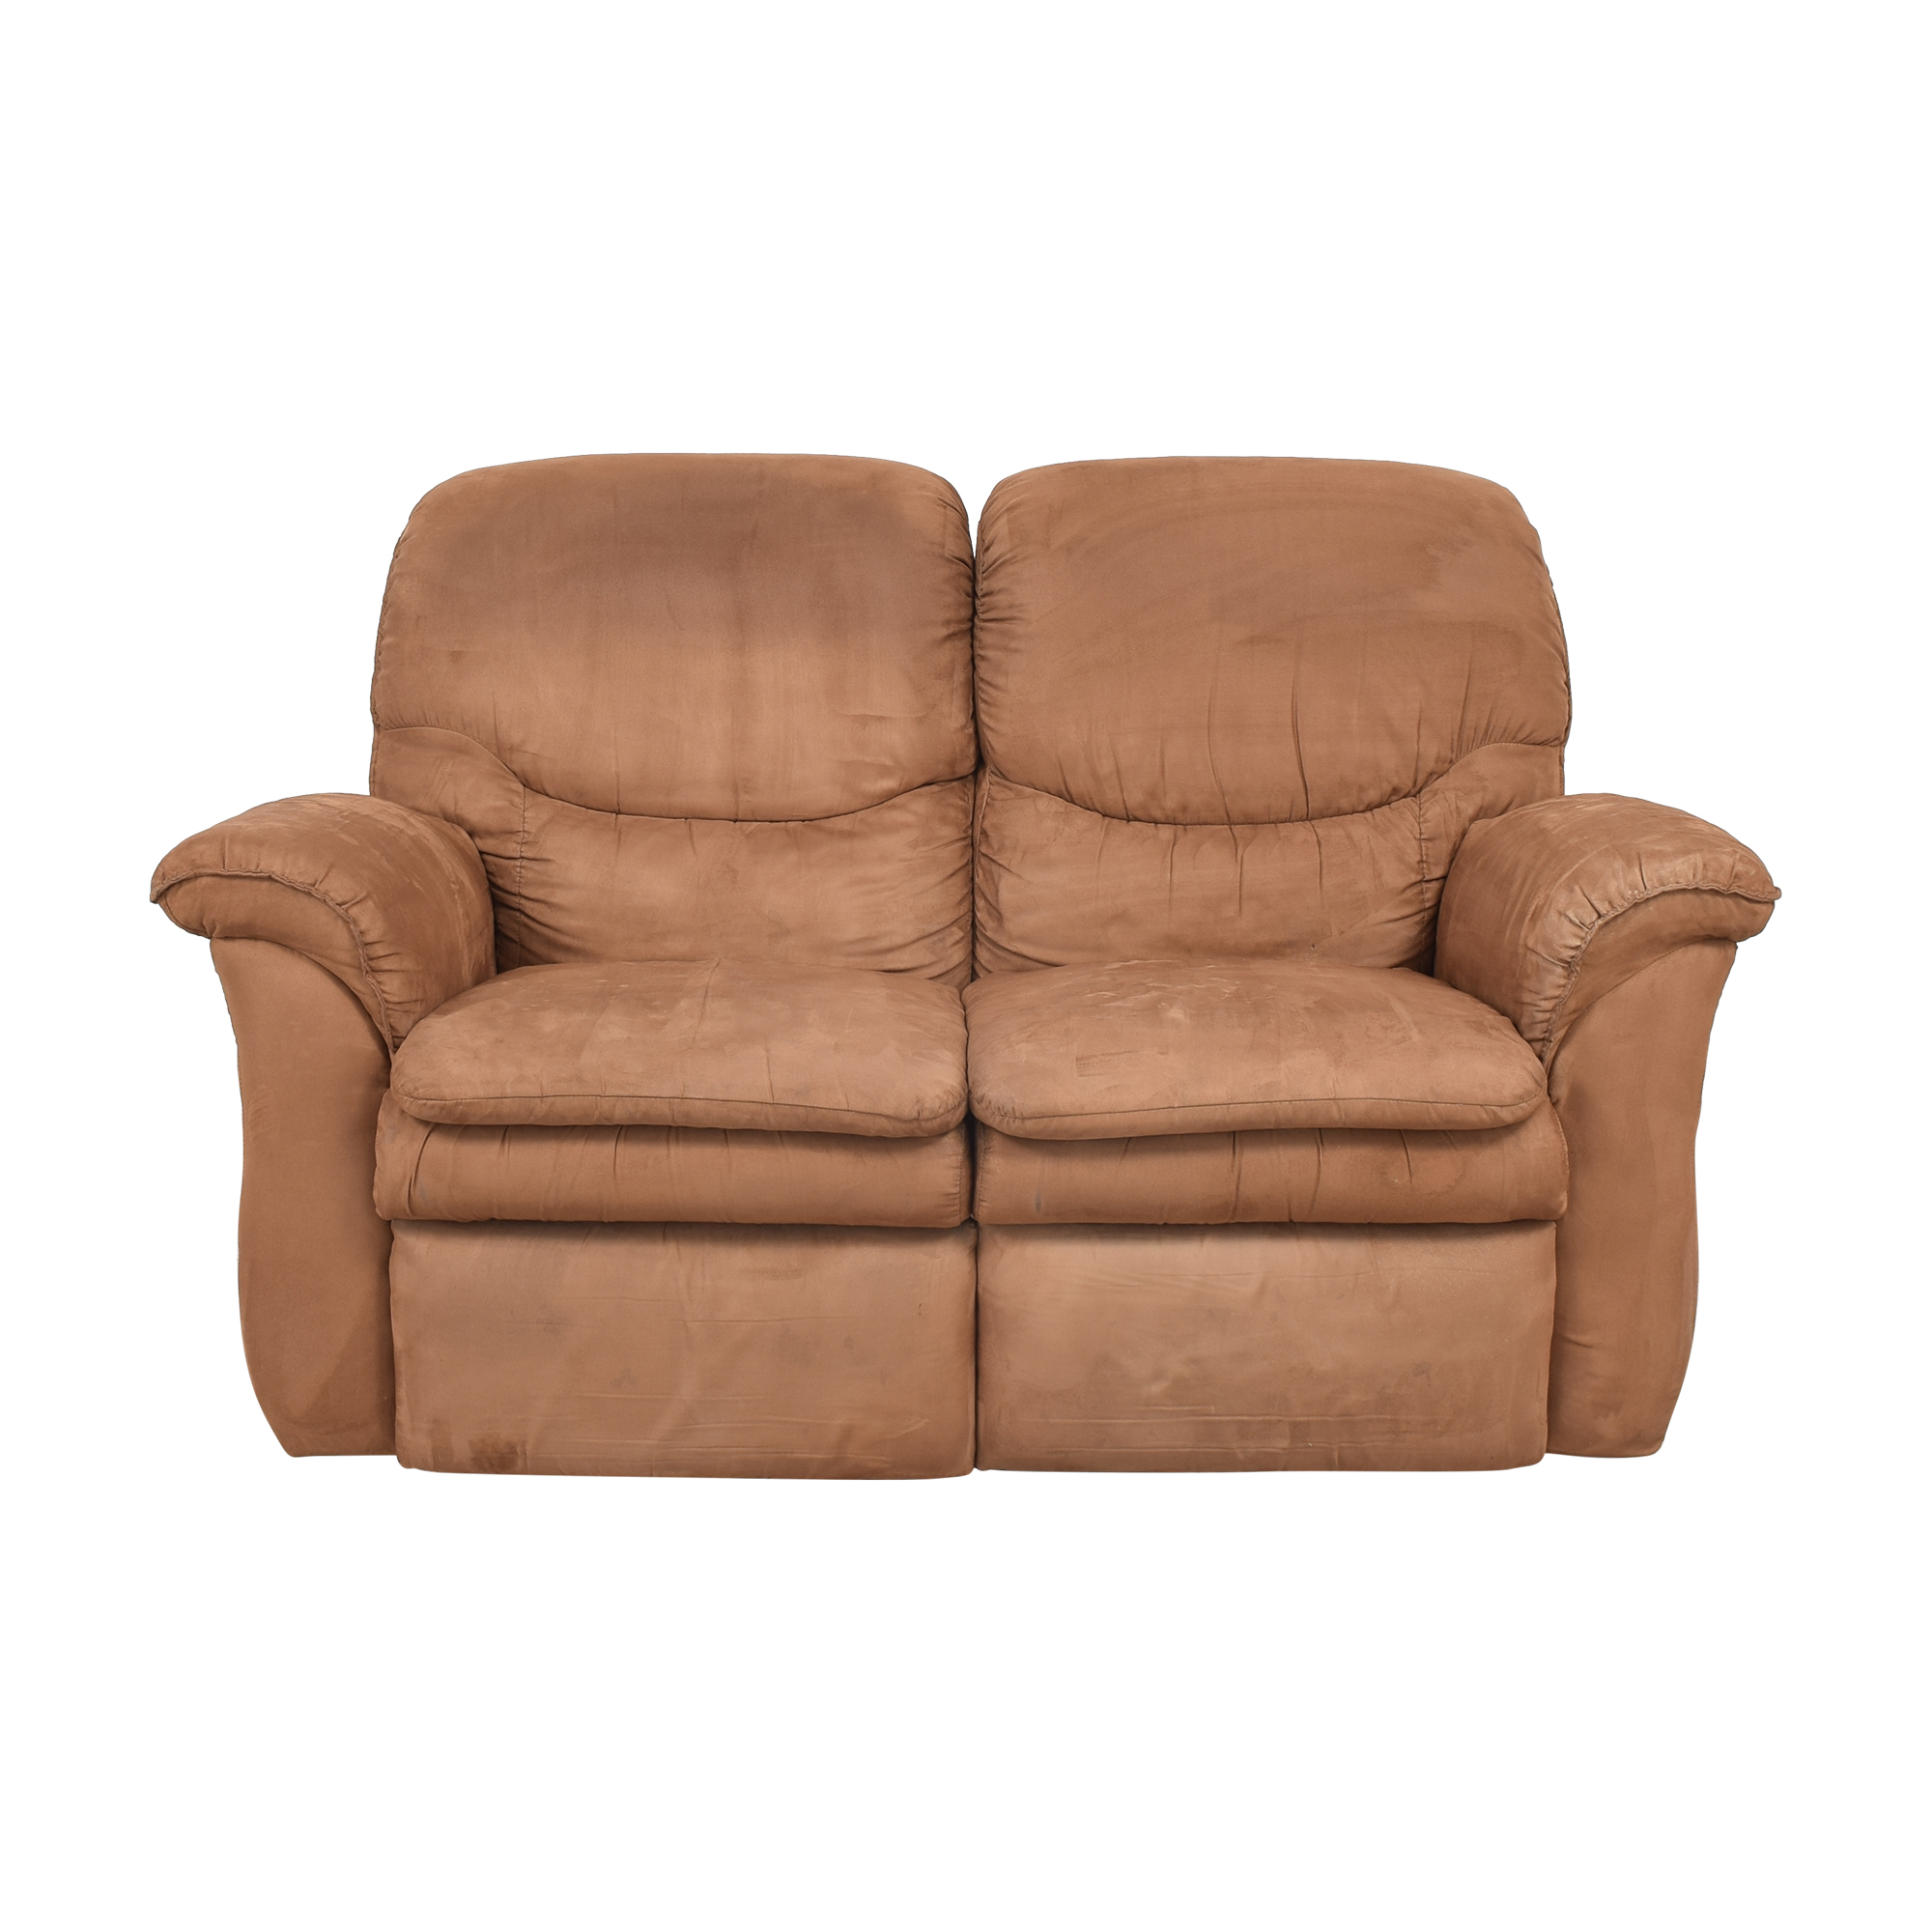 La-Z-Boy La-Z-Boy Reclining Loveseat used